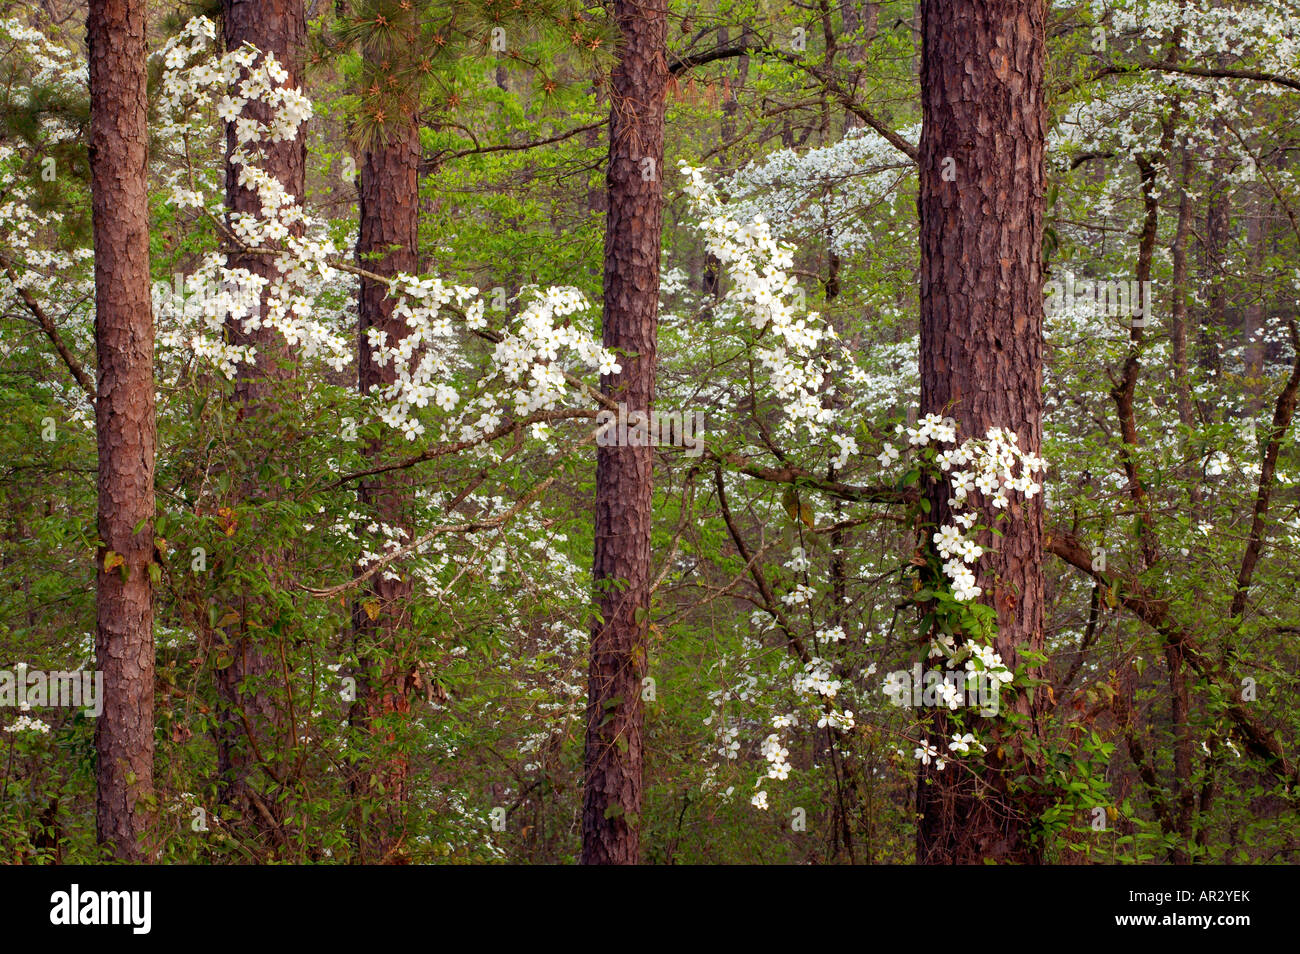 flowering dogwood blossoms in southern forest, Holly Springs National Forest, Mississippi USA - Stock Image